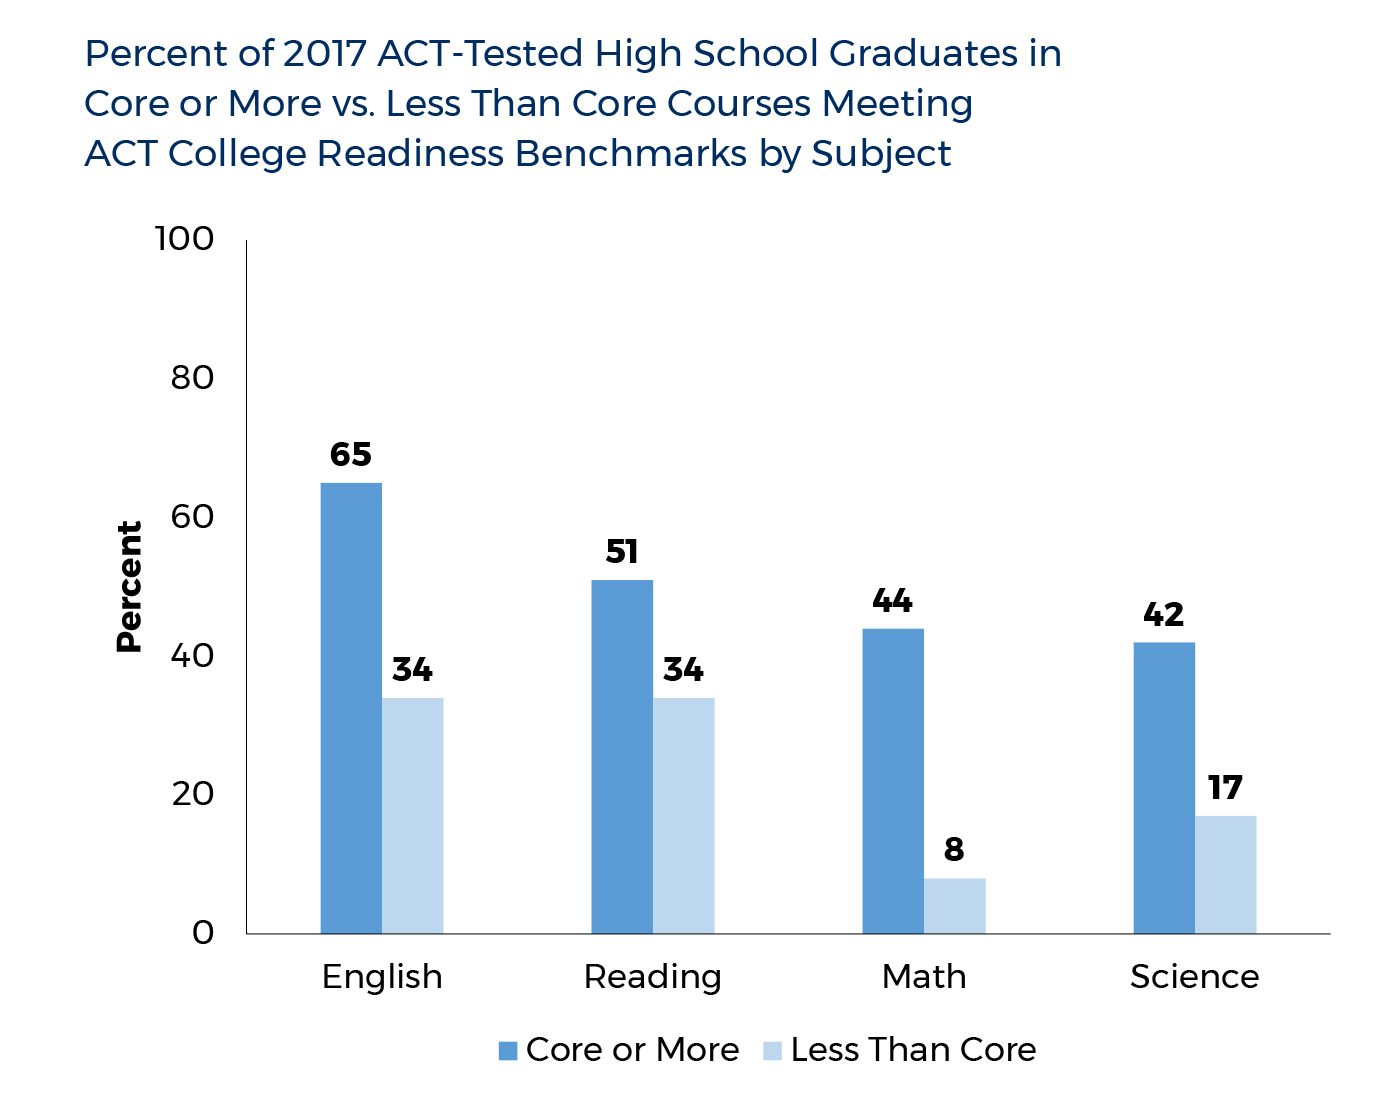 Graph showing percent of 2017 ACT-Tested High School Graduates in Core or More vs. Less Than Core Courses Meeting ACT College Readiness Benchmarks by Subject. English: Core or More=65%, Less Than Core=34%. Reading: Core or More=51%, Less Than Coire=34%. Math: Core or More= 44%, Less Than Core=8%. Science: Core or More=42%, Less Than Core=17%.